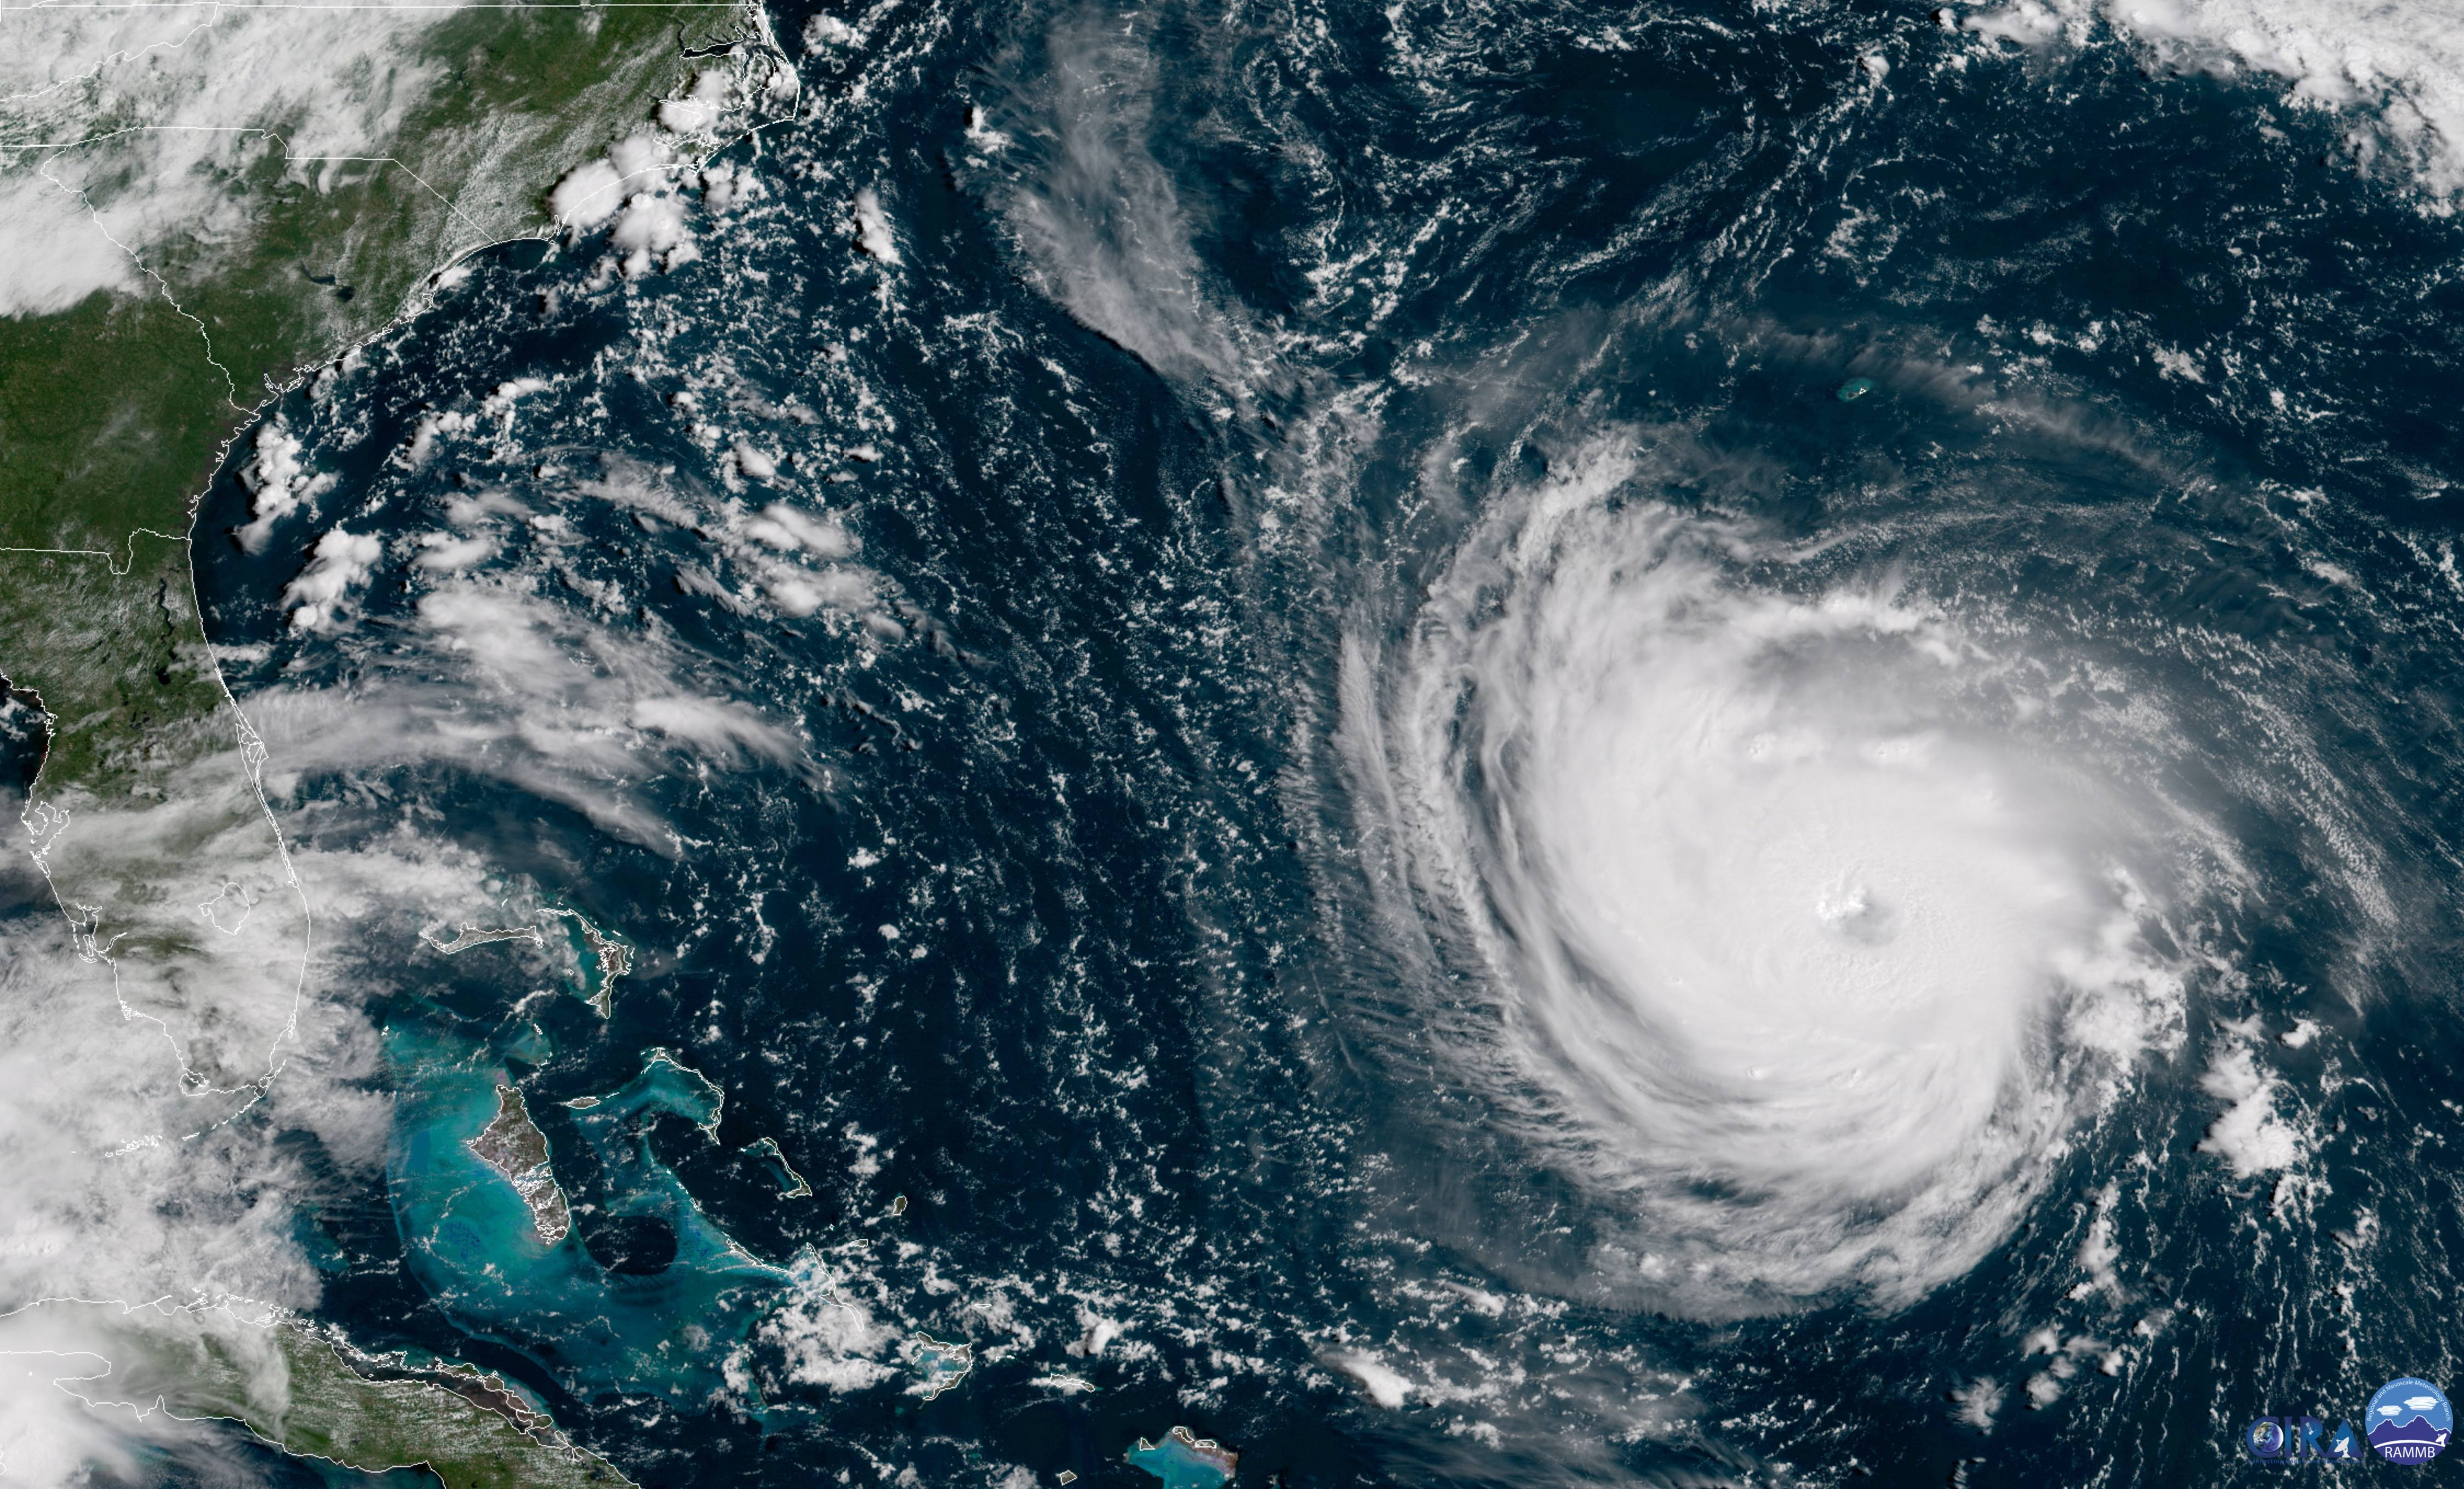 This GOES East satellite image taken Tuesday at 10:30 a.m. EDT, and provided by NOAA shows Hurricane Florence in the Atlantic Ocean as it threatens the U.S. East Coast, including Florida, Georgia, South and North Carolina. Millions of Americans are preparing for what could be one of the most catastrophic hurricanes to hit the Eastern Seaboard in decades. Mandatory evacuations begin at noon Tuesday, for parts of the Carolinas and Virginia.